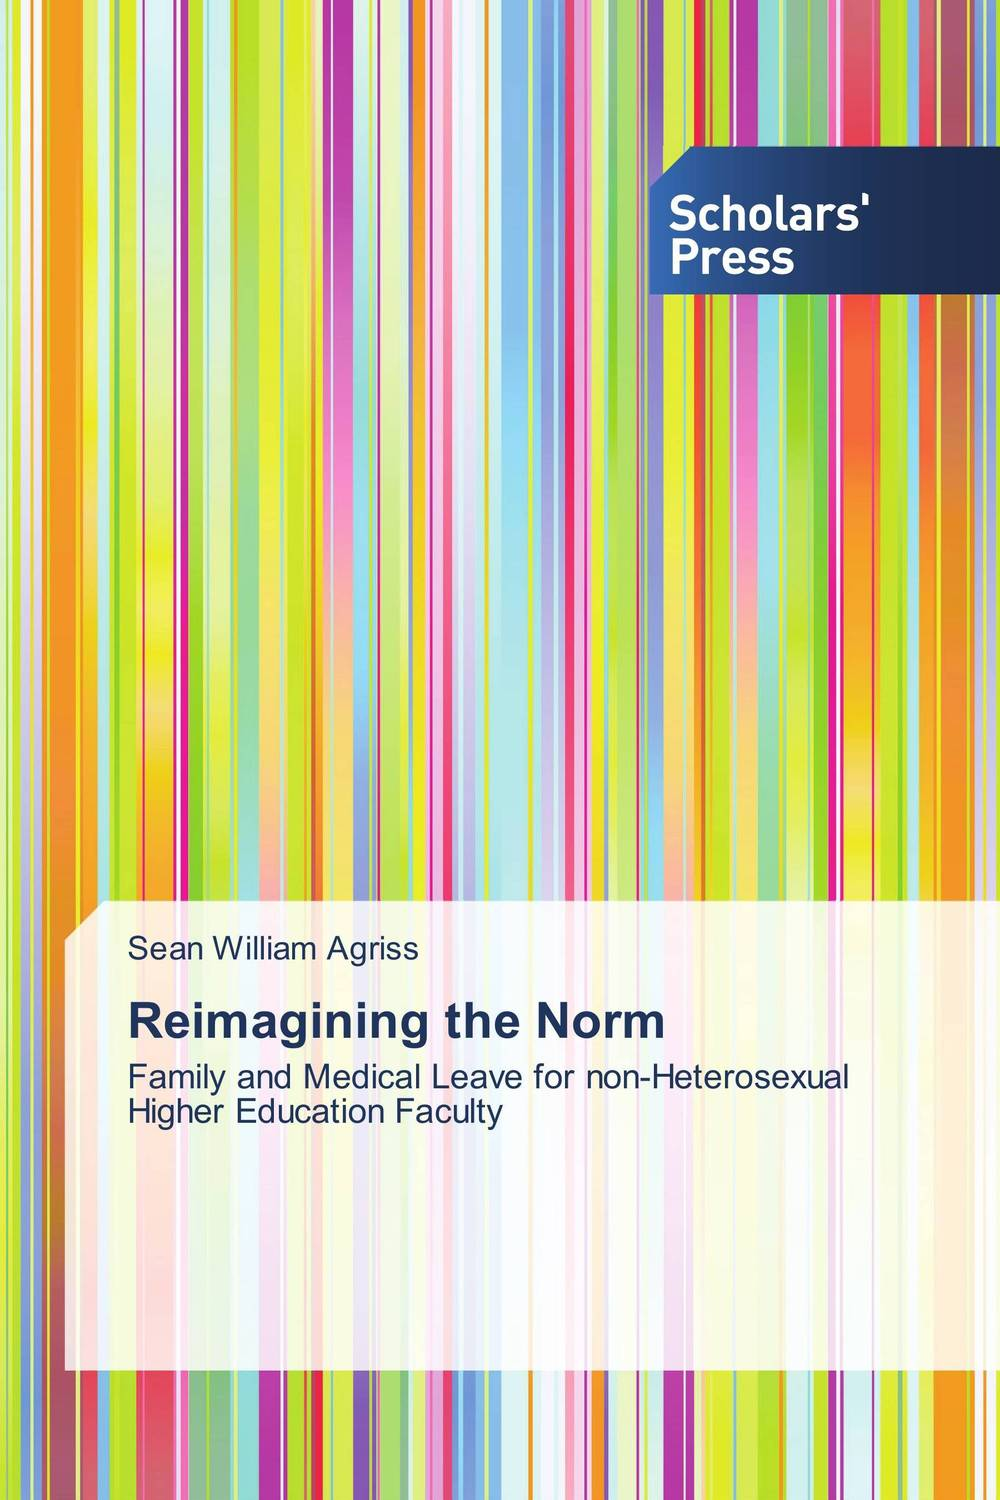 Reimagining the Norm affair of state an